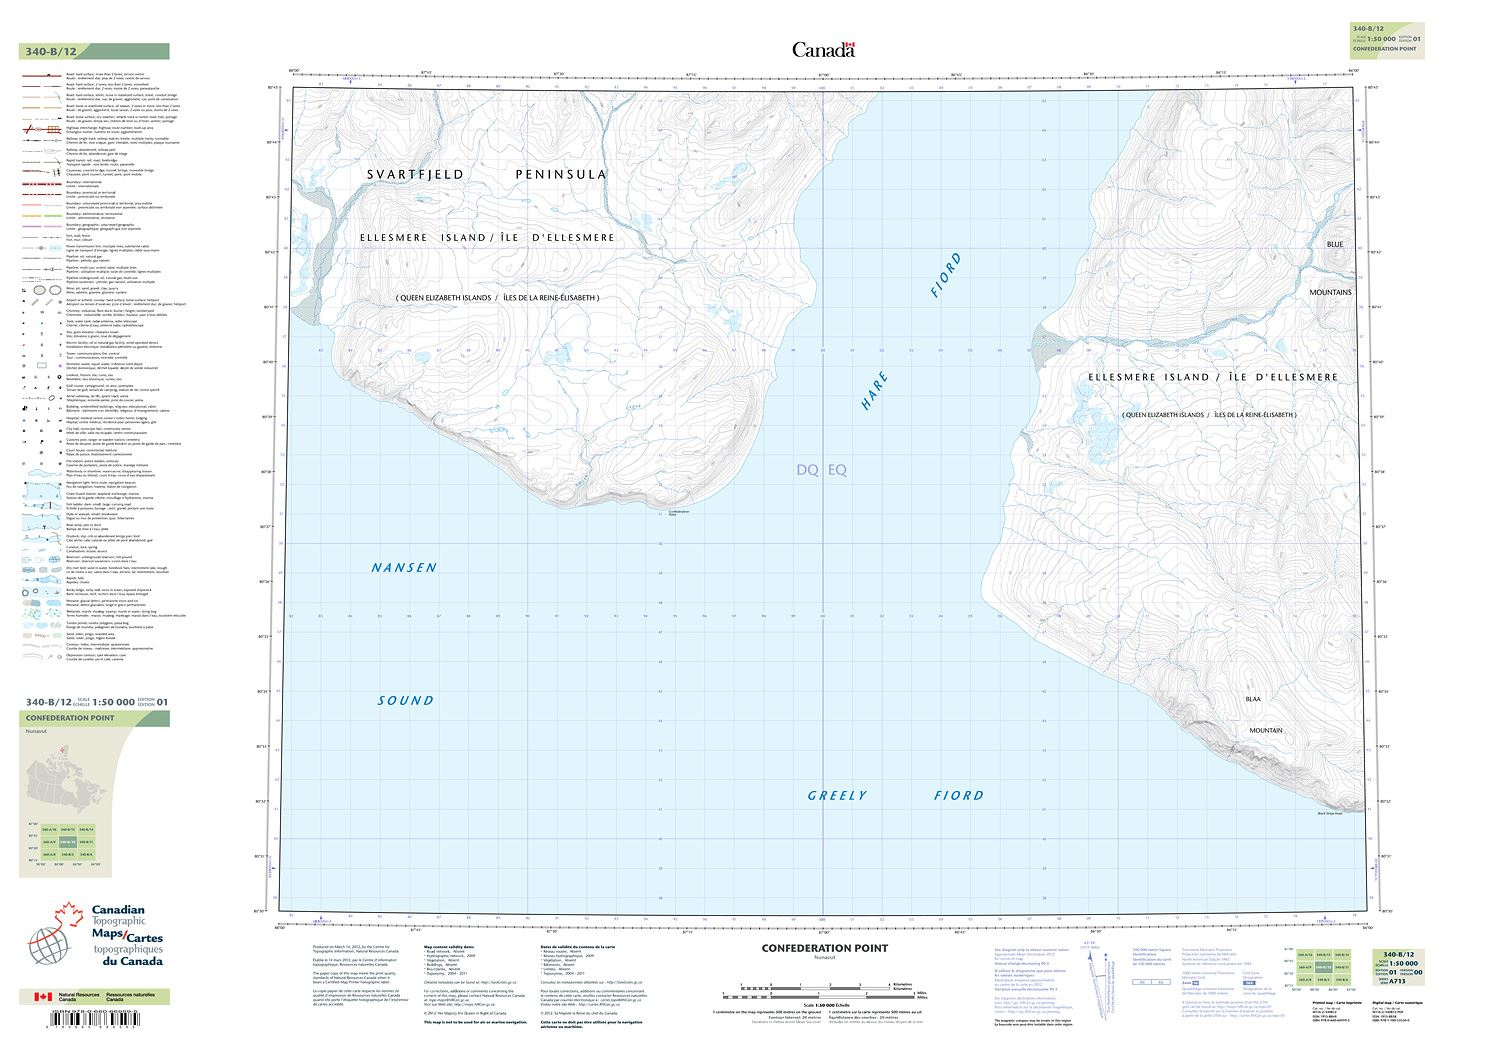 Map Of Canada Confederation.340b12 Confederation Point Topographic Map